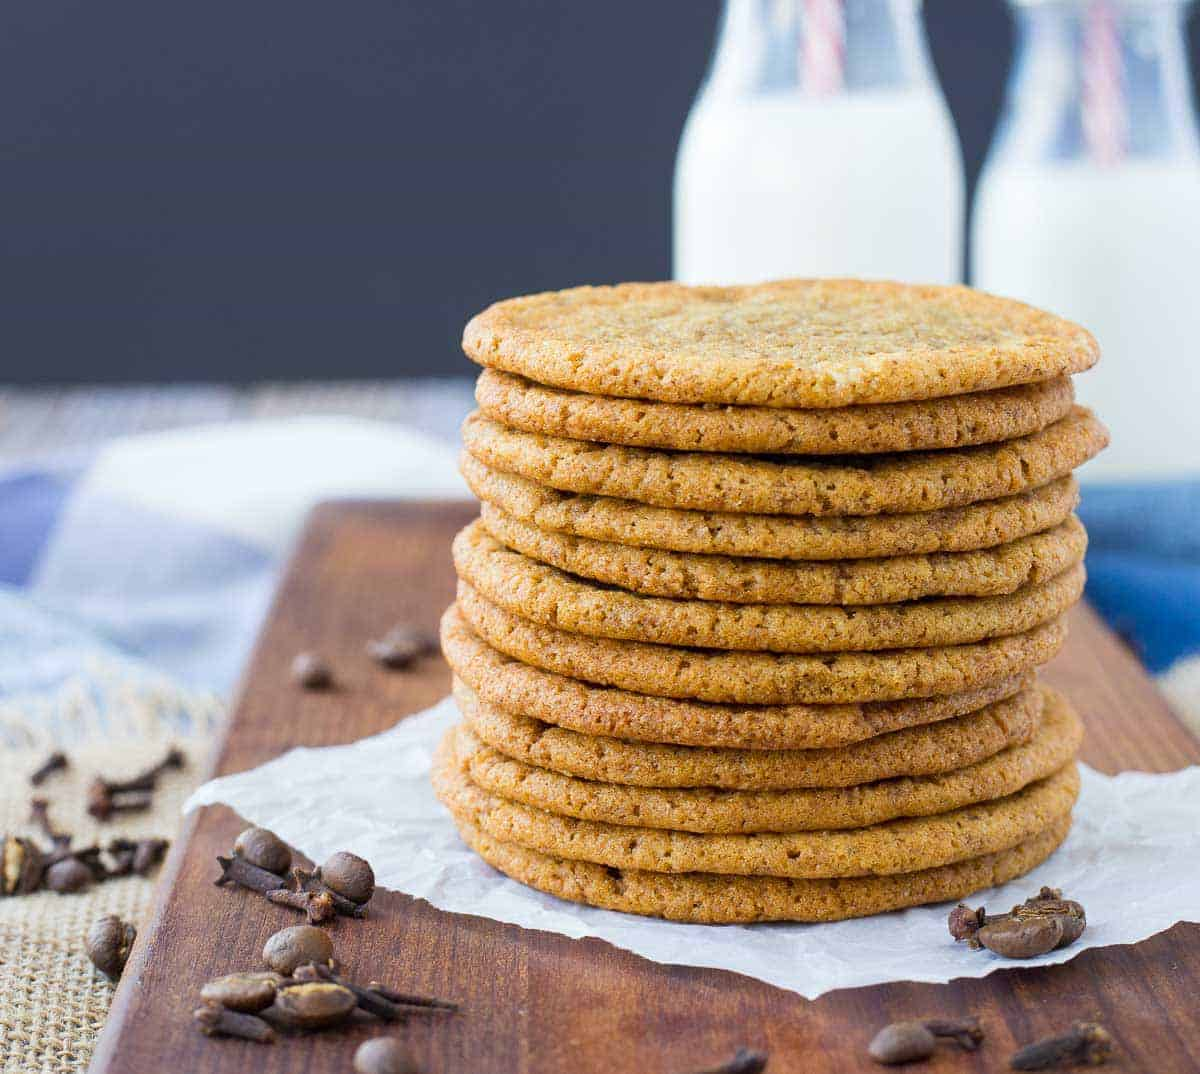 A surprising cookie combination full of familiarity with a bit of intrigue. The crispy edges and soft chewy middle make these coffee cookies with clove absolutely irresistible! Get the recipe on RachelCooks.com!